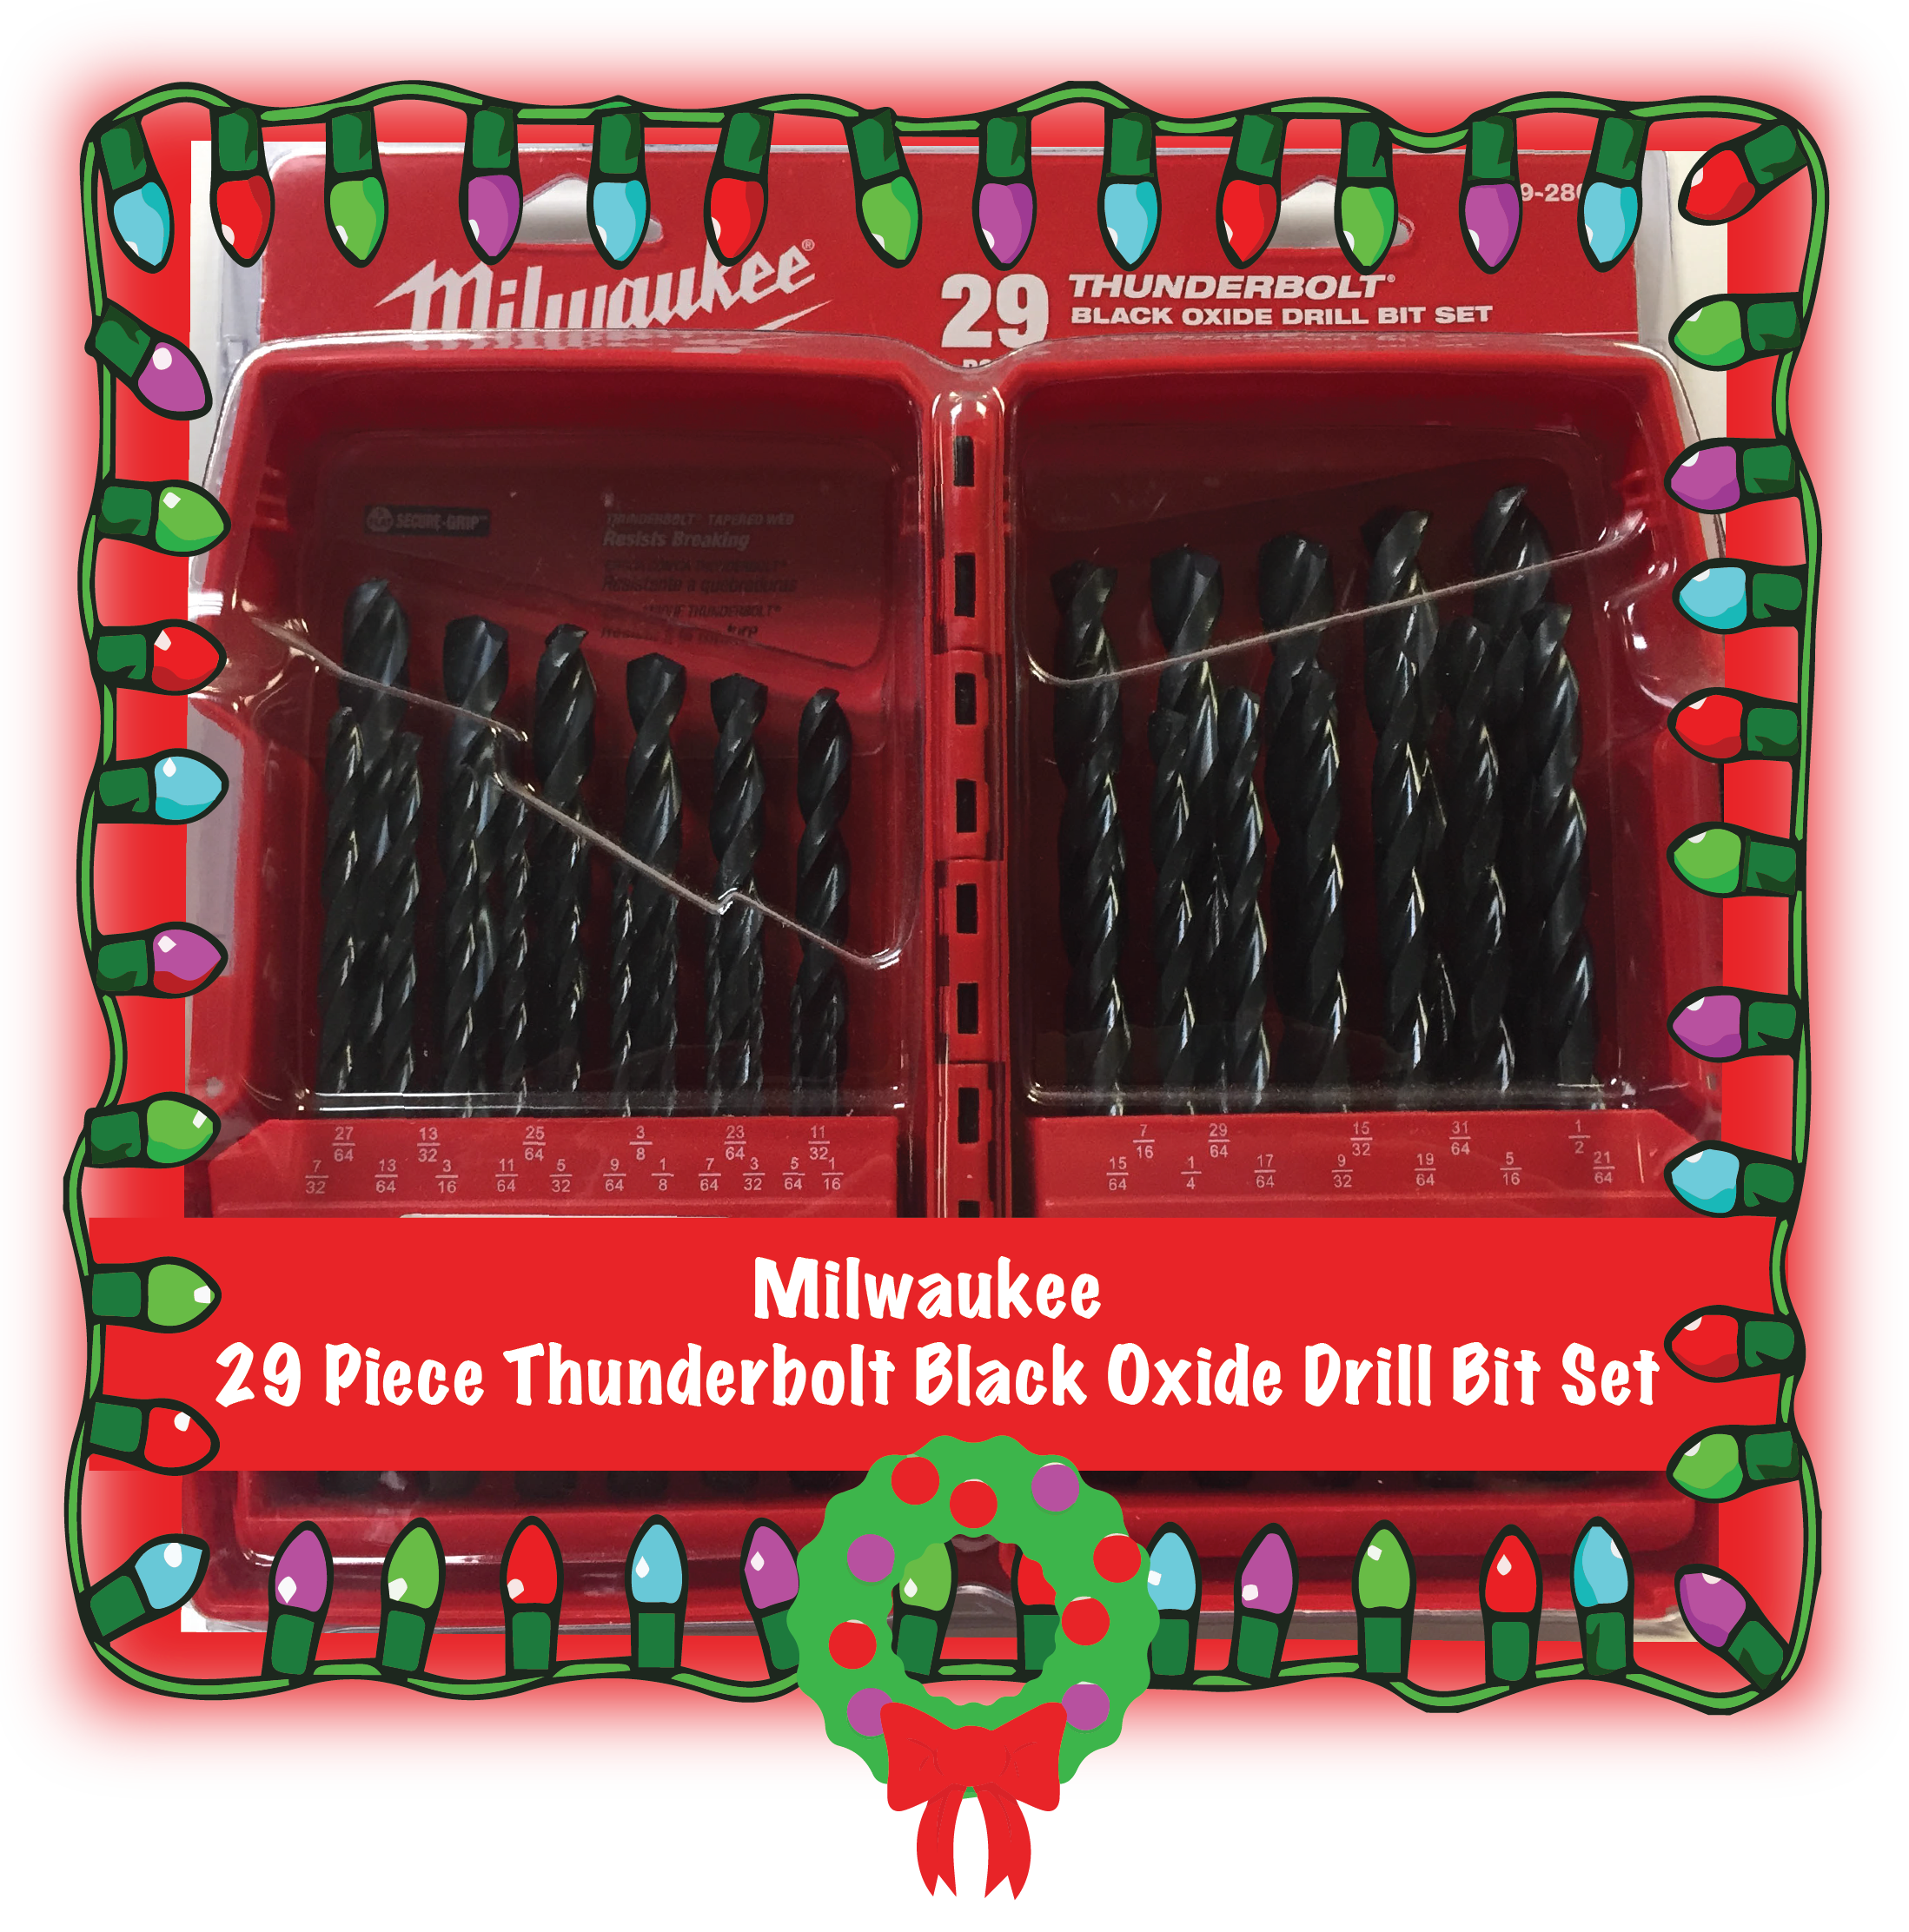 Milwaukee 29 Piece Thunderbolt Black Oxide Drill Bit Set. Heavy duty durable drill bits contained in a box just as durable as the bits. Part Number: 48-89-2802